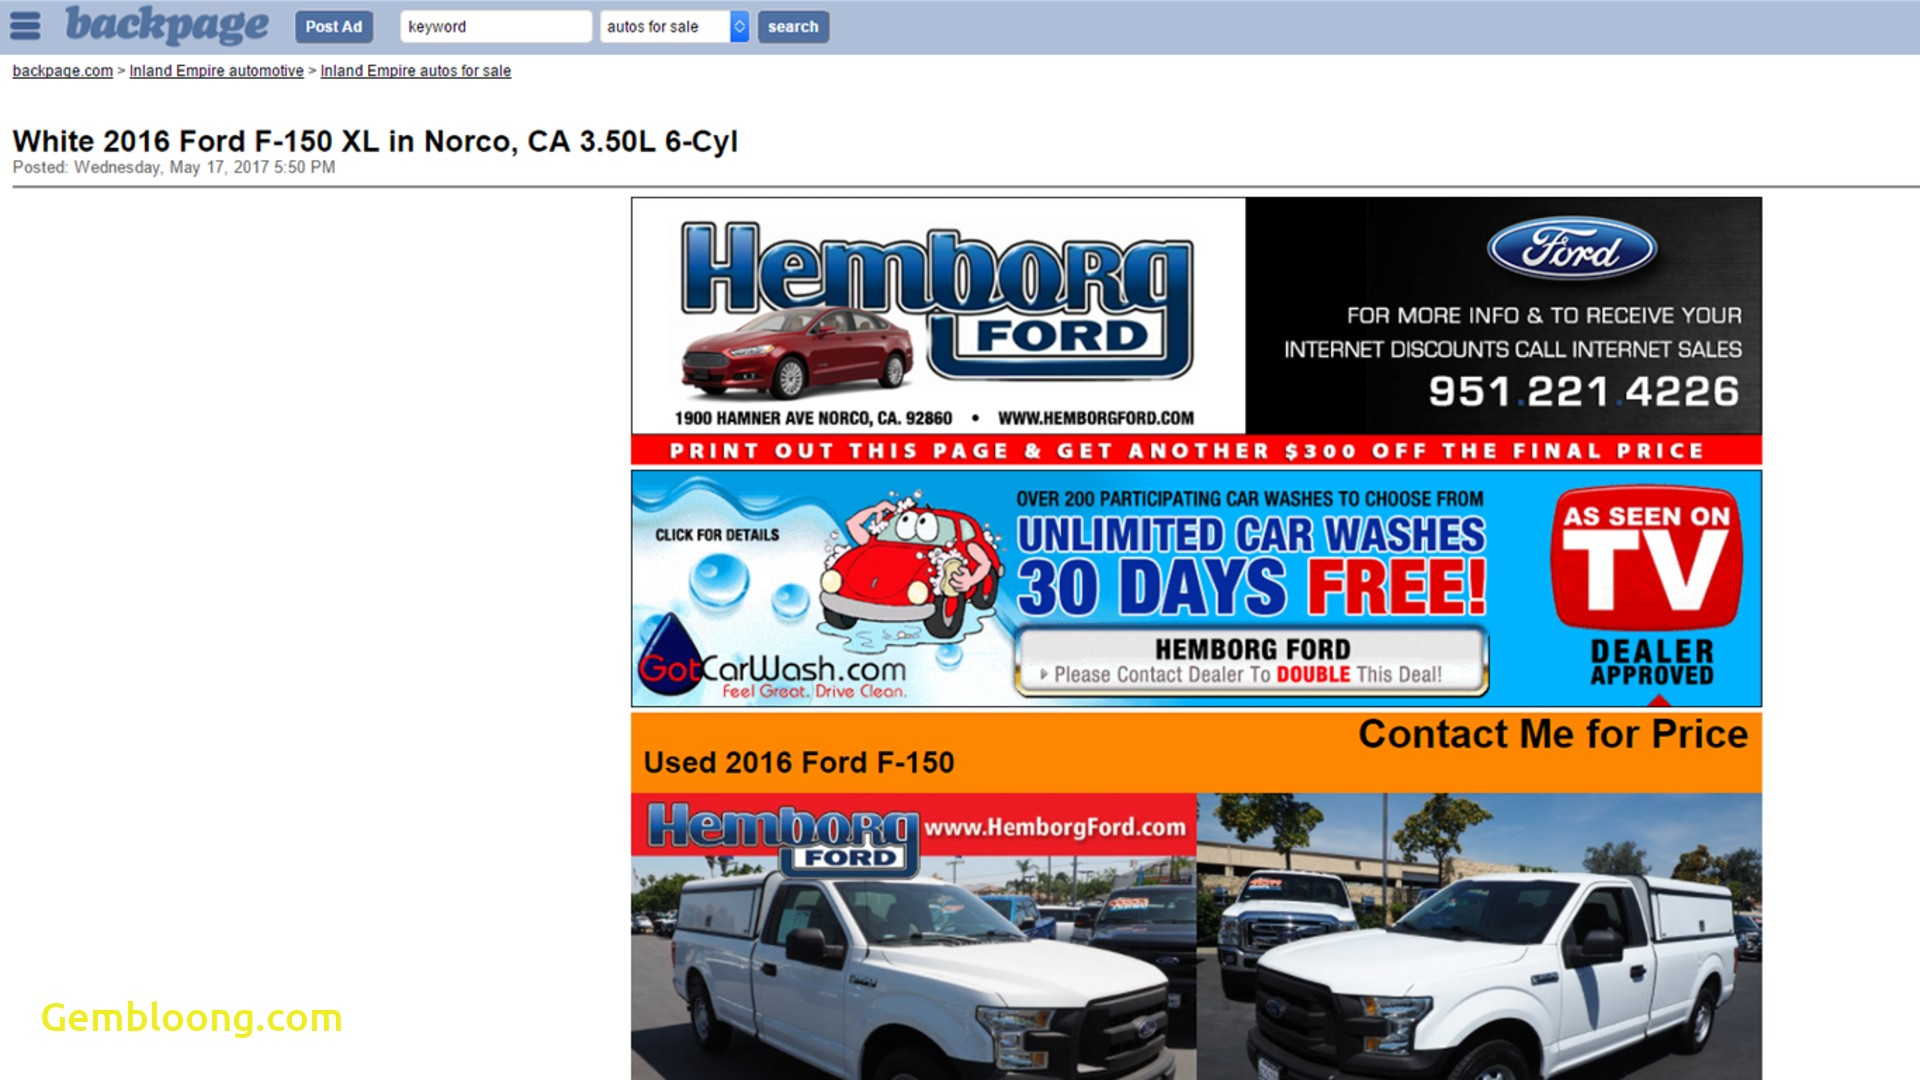 Cars for Sale by Owner Craigslist Inland Empire Luxury Amazon Search All for Backpage Appstore for android